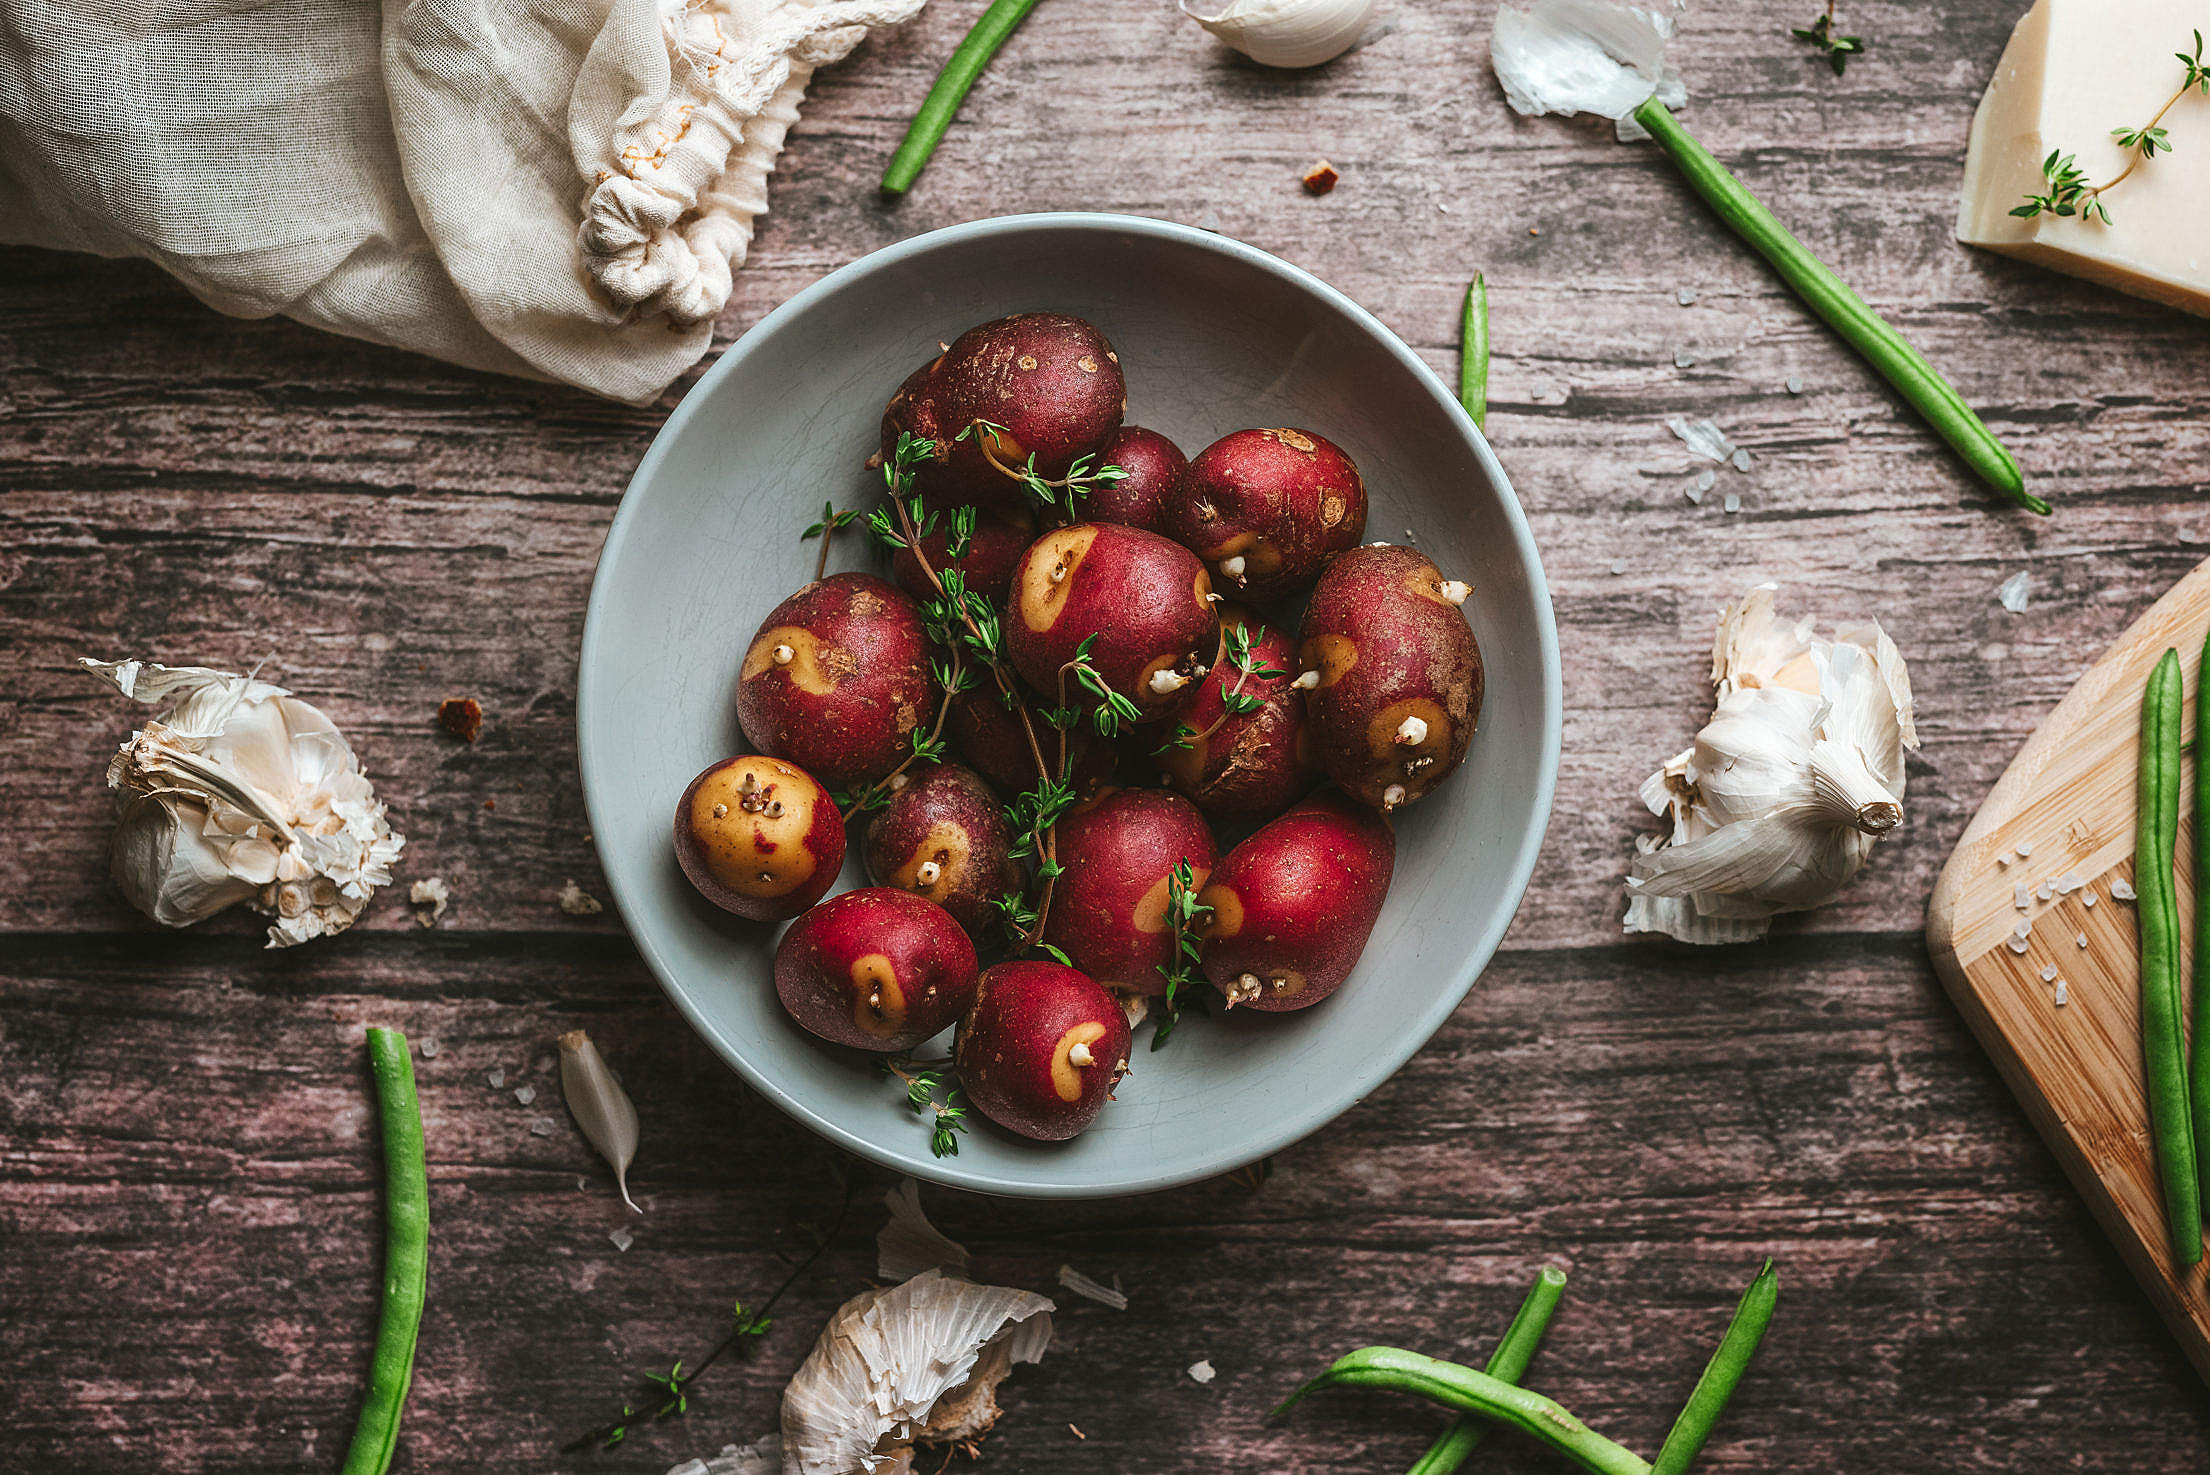 Red Potatoes with Thyme on a Rustic Table Free Stock Photo